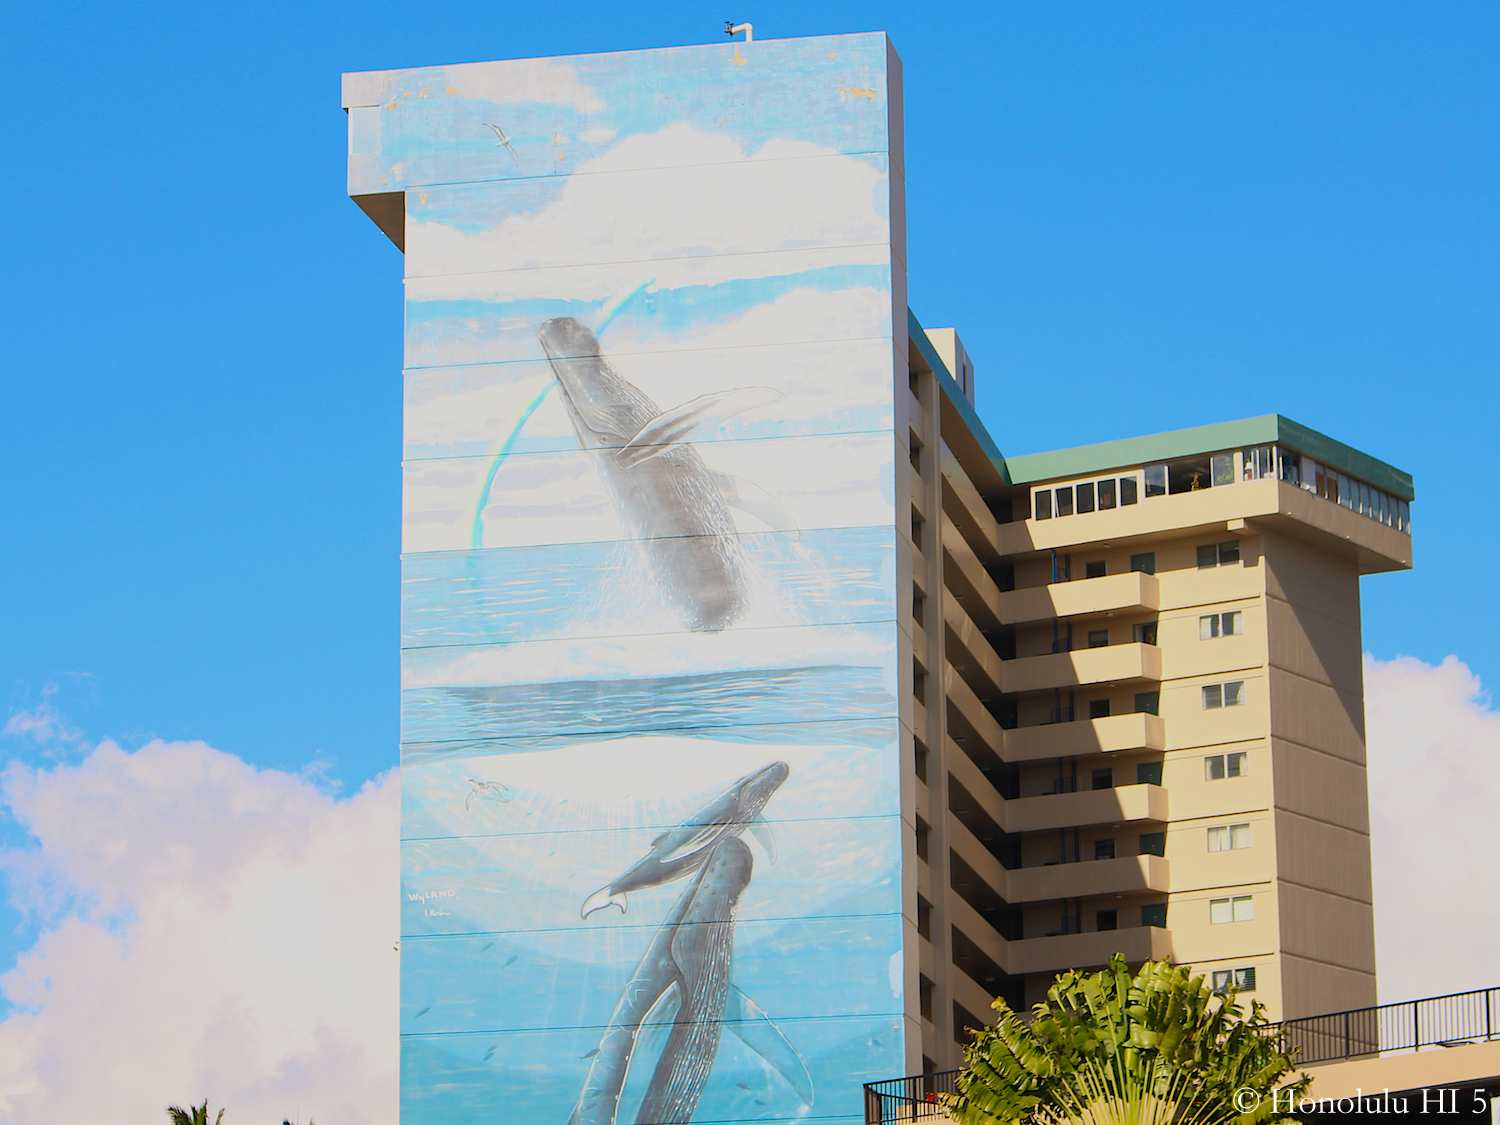 Royal Aloha Condo's Whale Mural on Side of Building